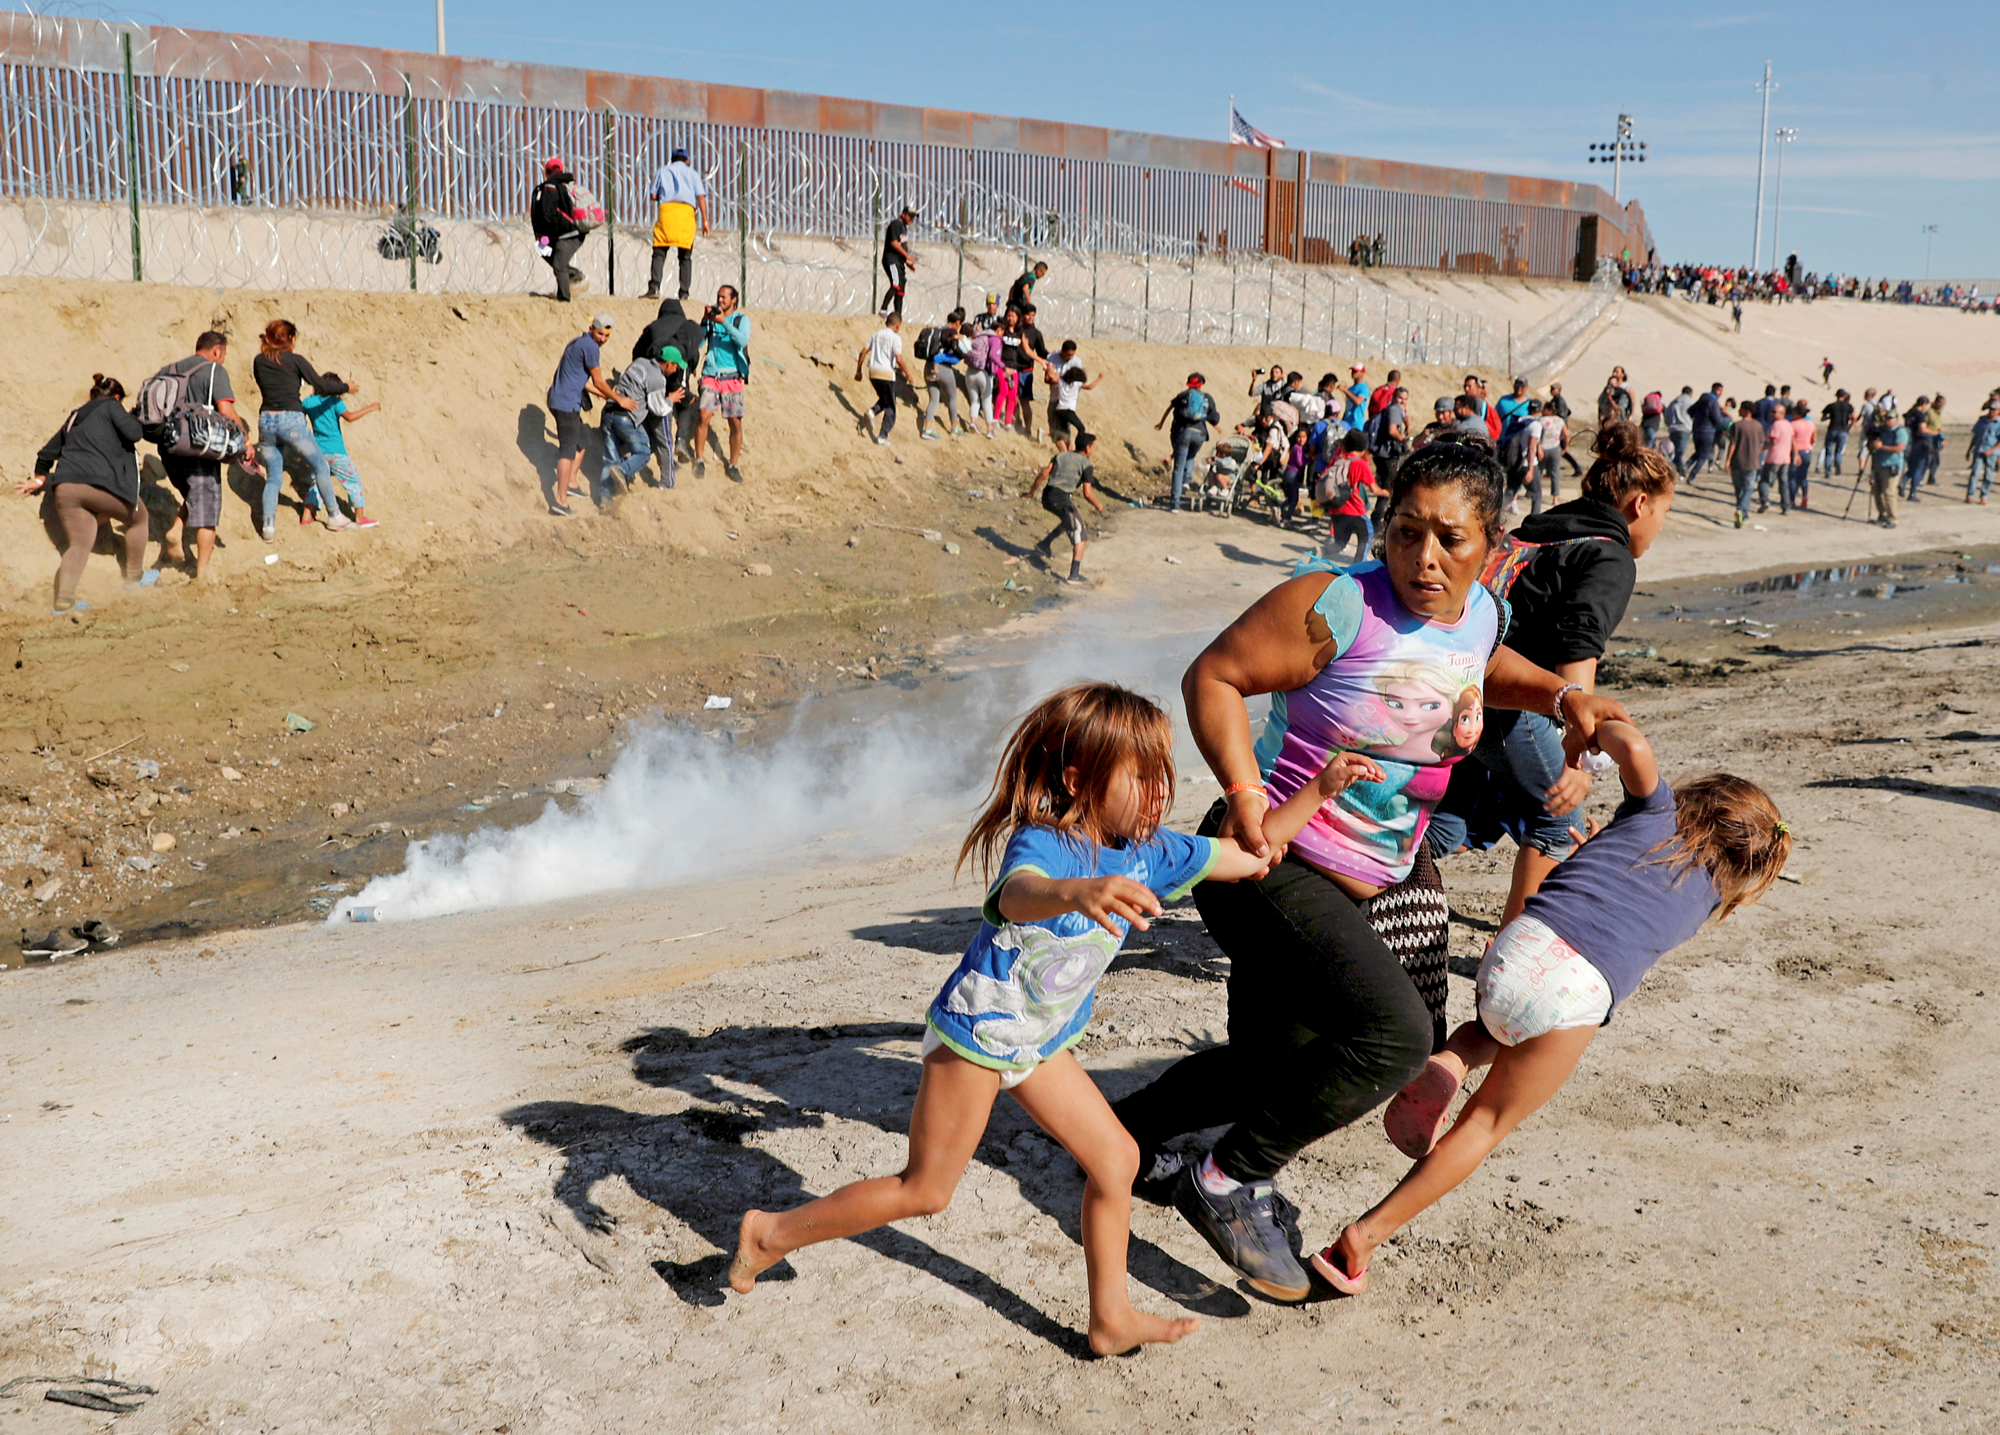 A migrant family runs away from tear gas in front of the border wall between the U.S and Mexico, in Tijuana